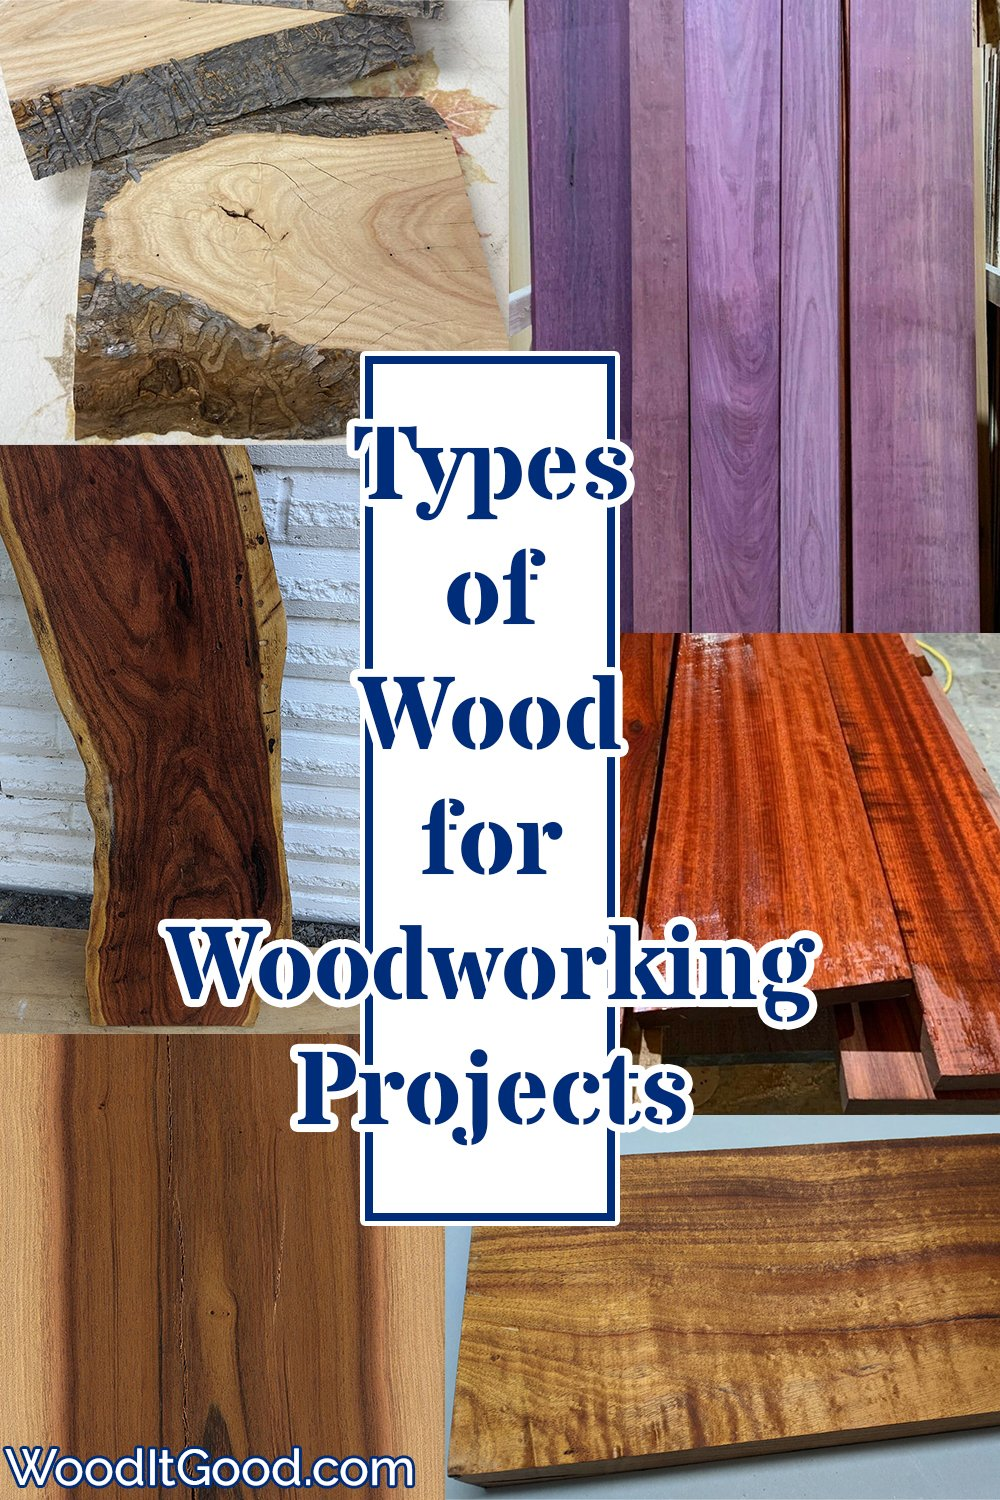 Types of wood for woodworking projects.